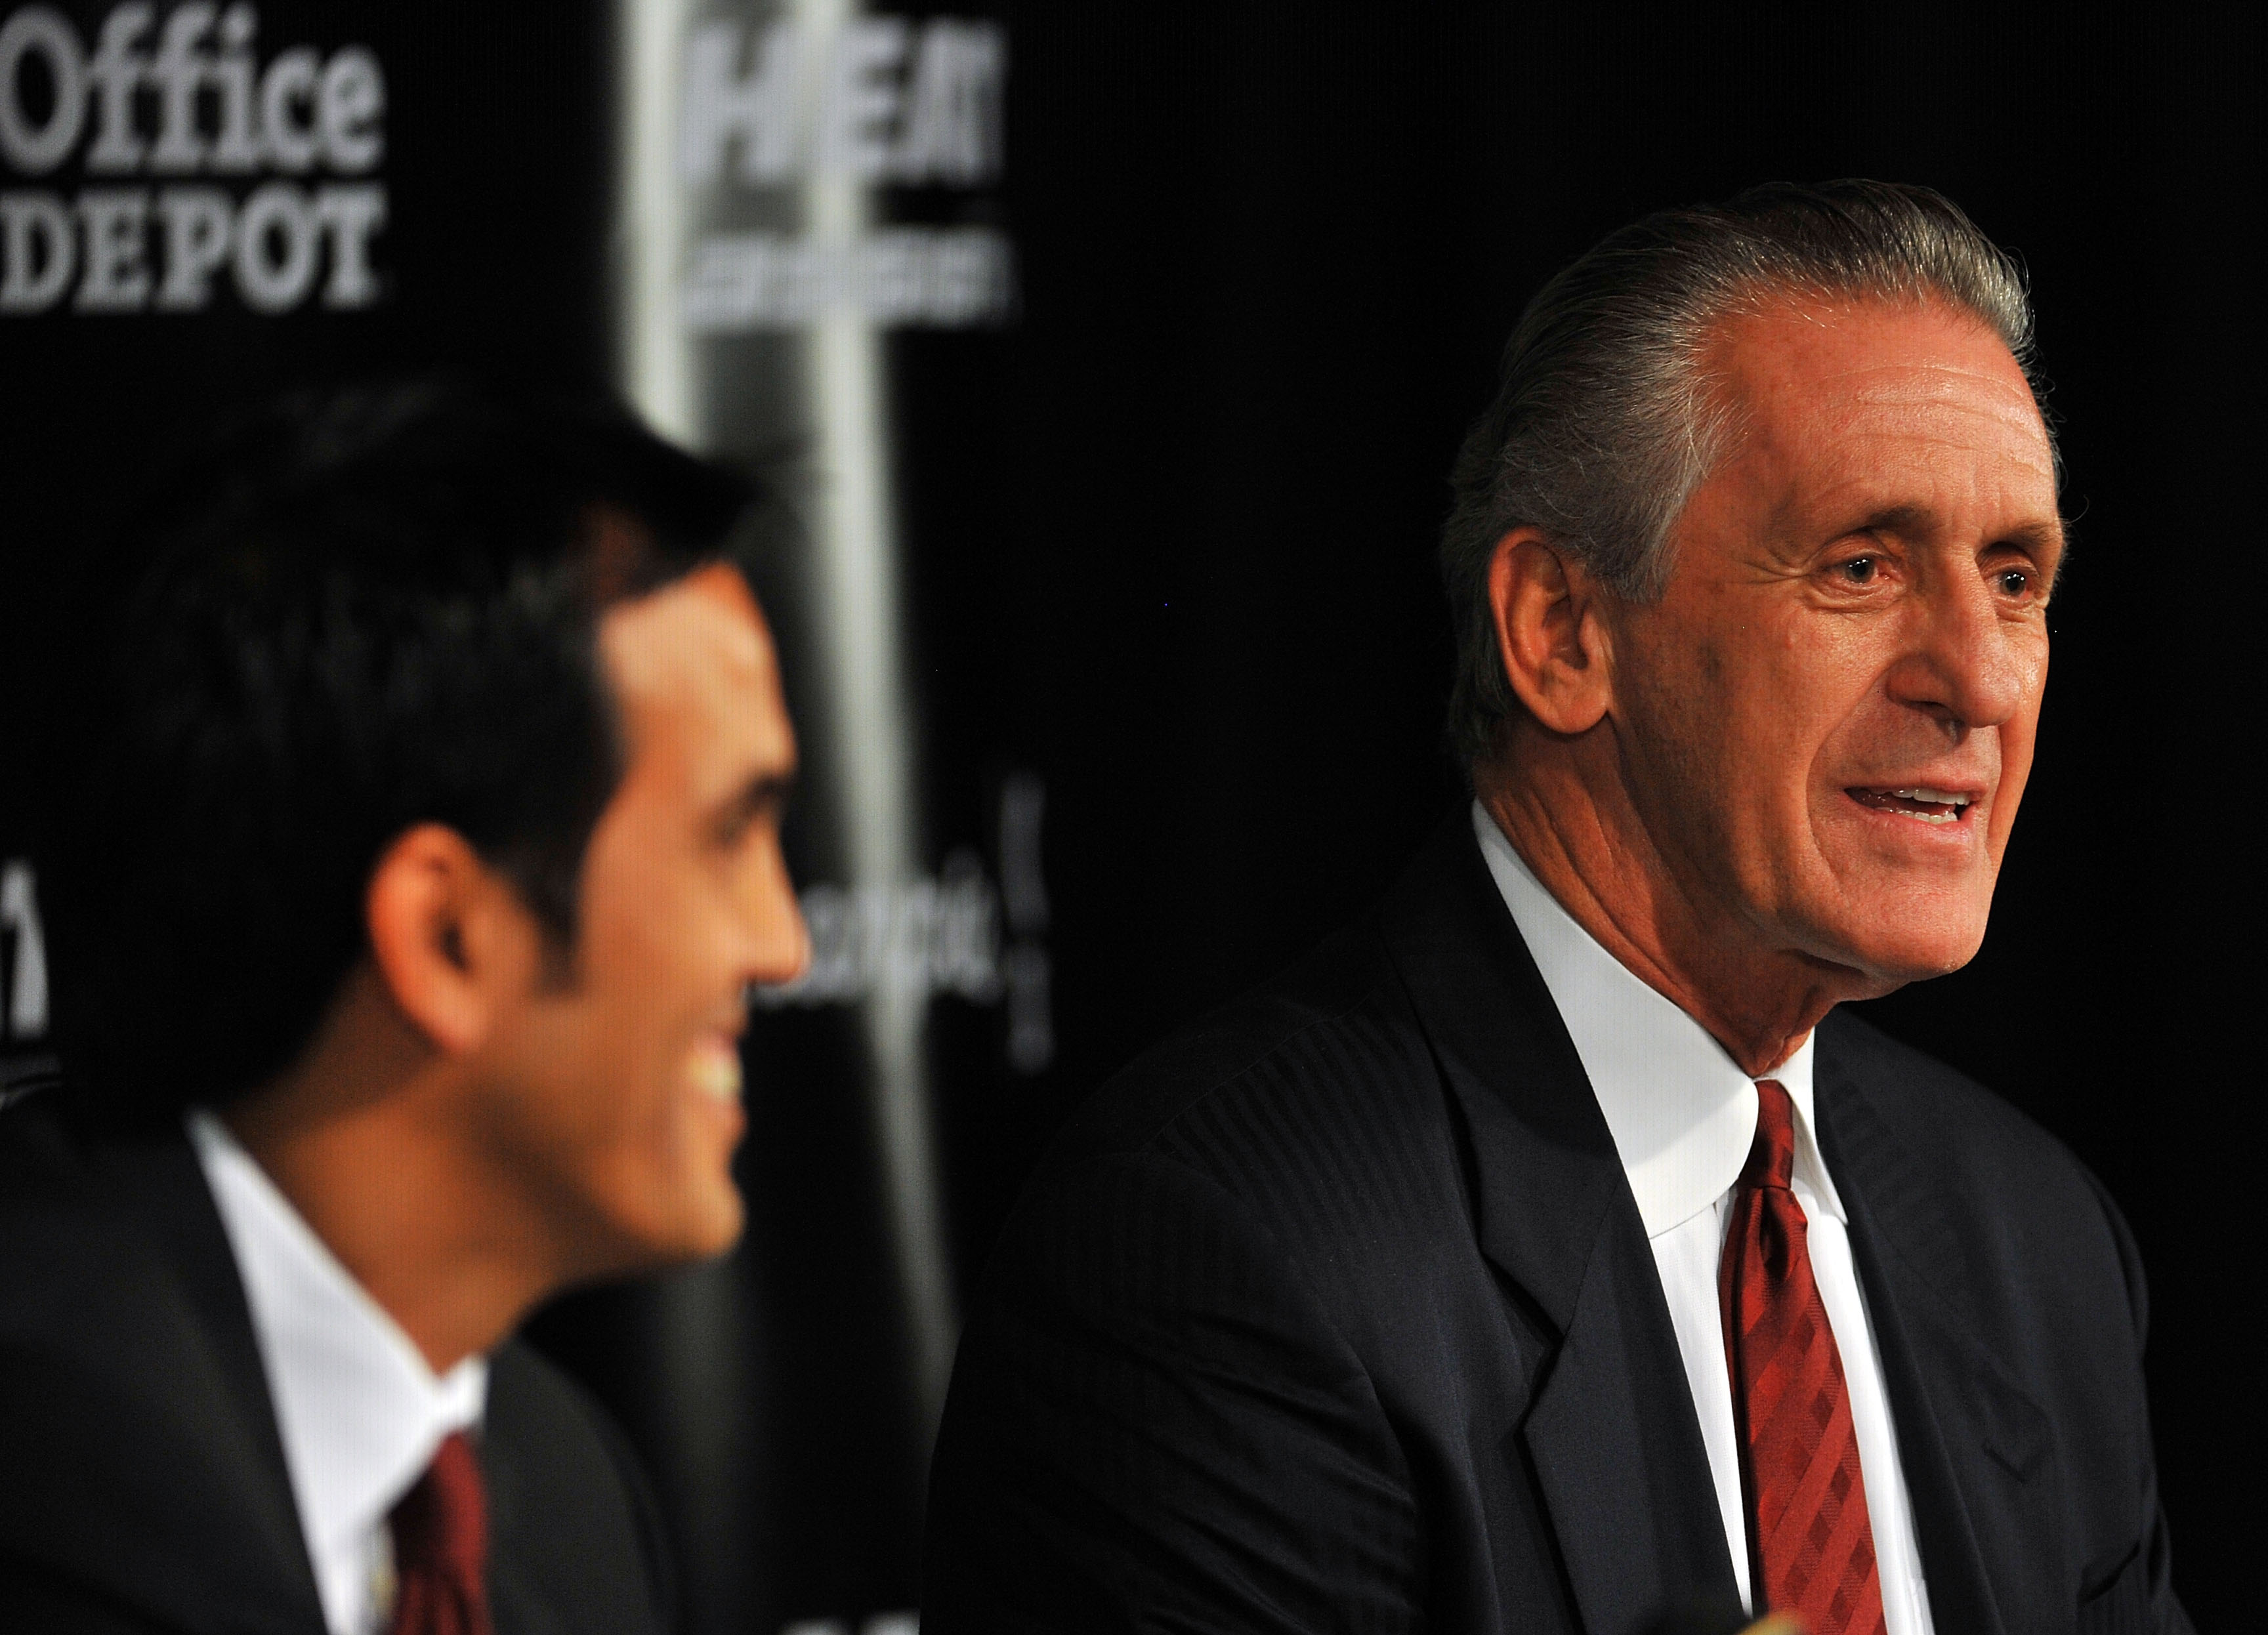 MIAMI - JULY 09:  Head coach Erik Spoelstra (L) and President Pat Riley (R) of the Miami Heat talk during a press conference after a welcome party for new teammates LeBron James, Dwyane Wade, and Chris Bosh at American Airlines Arena on July 9, 2010 in Mi